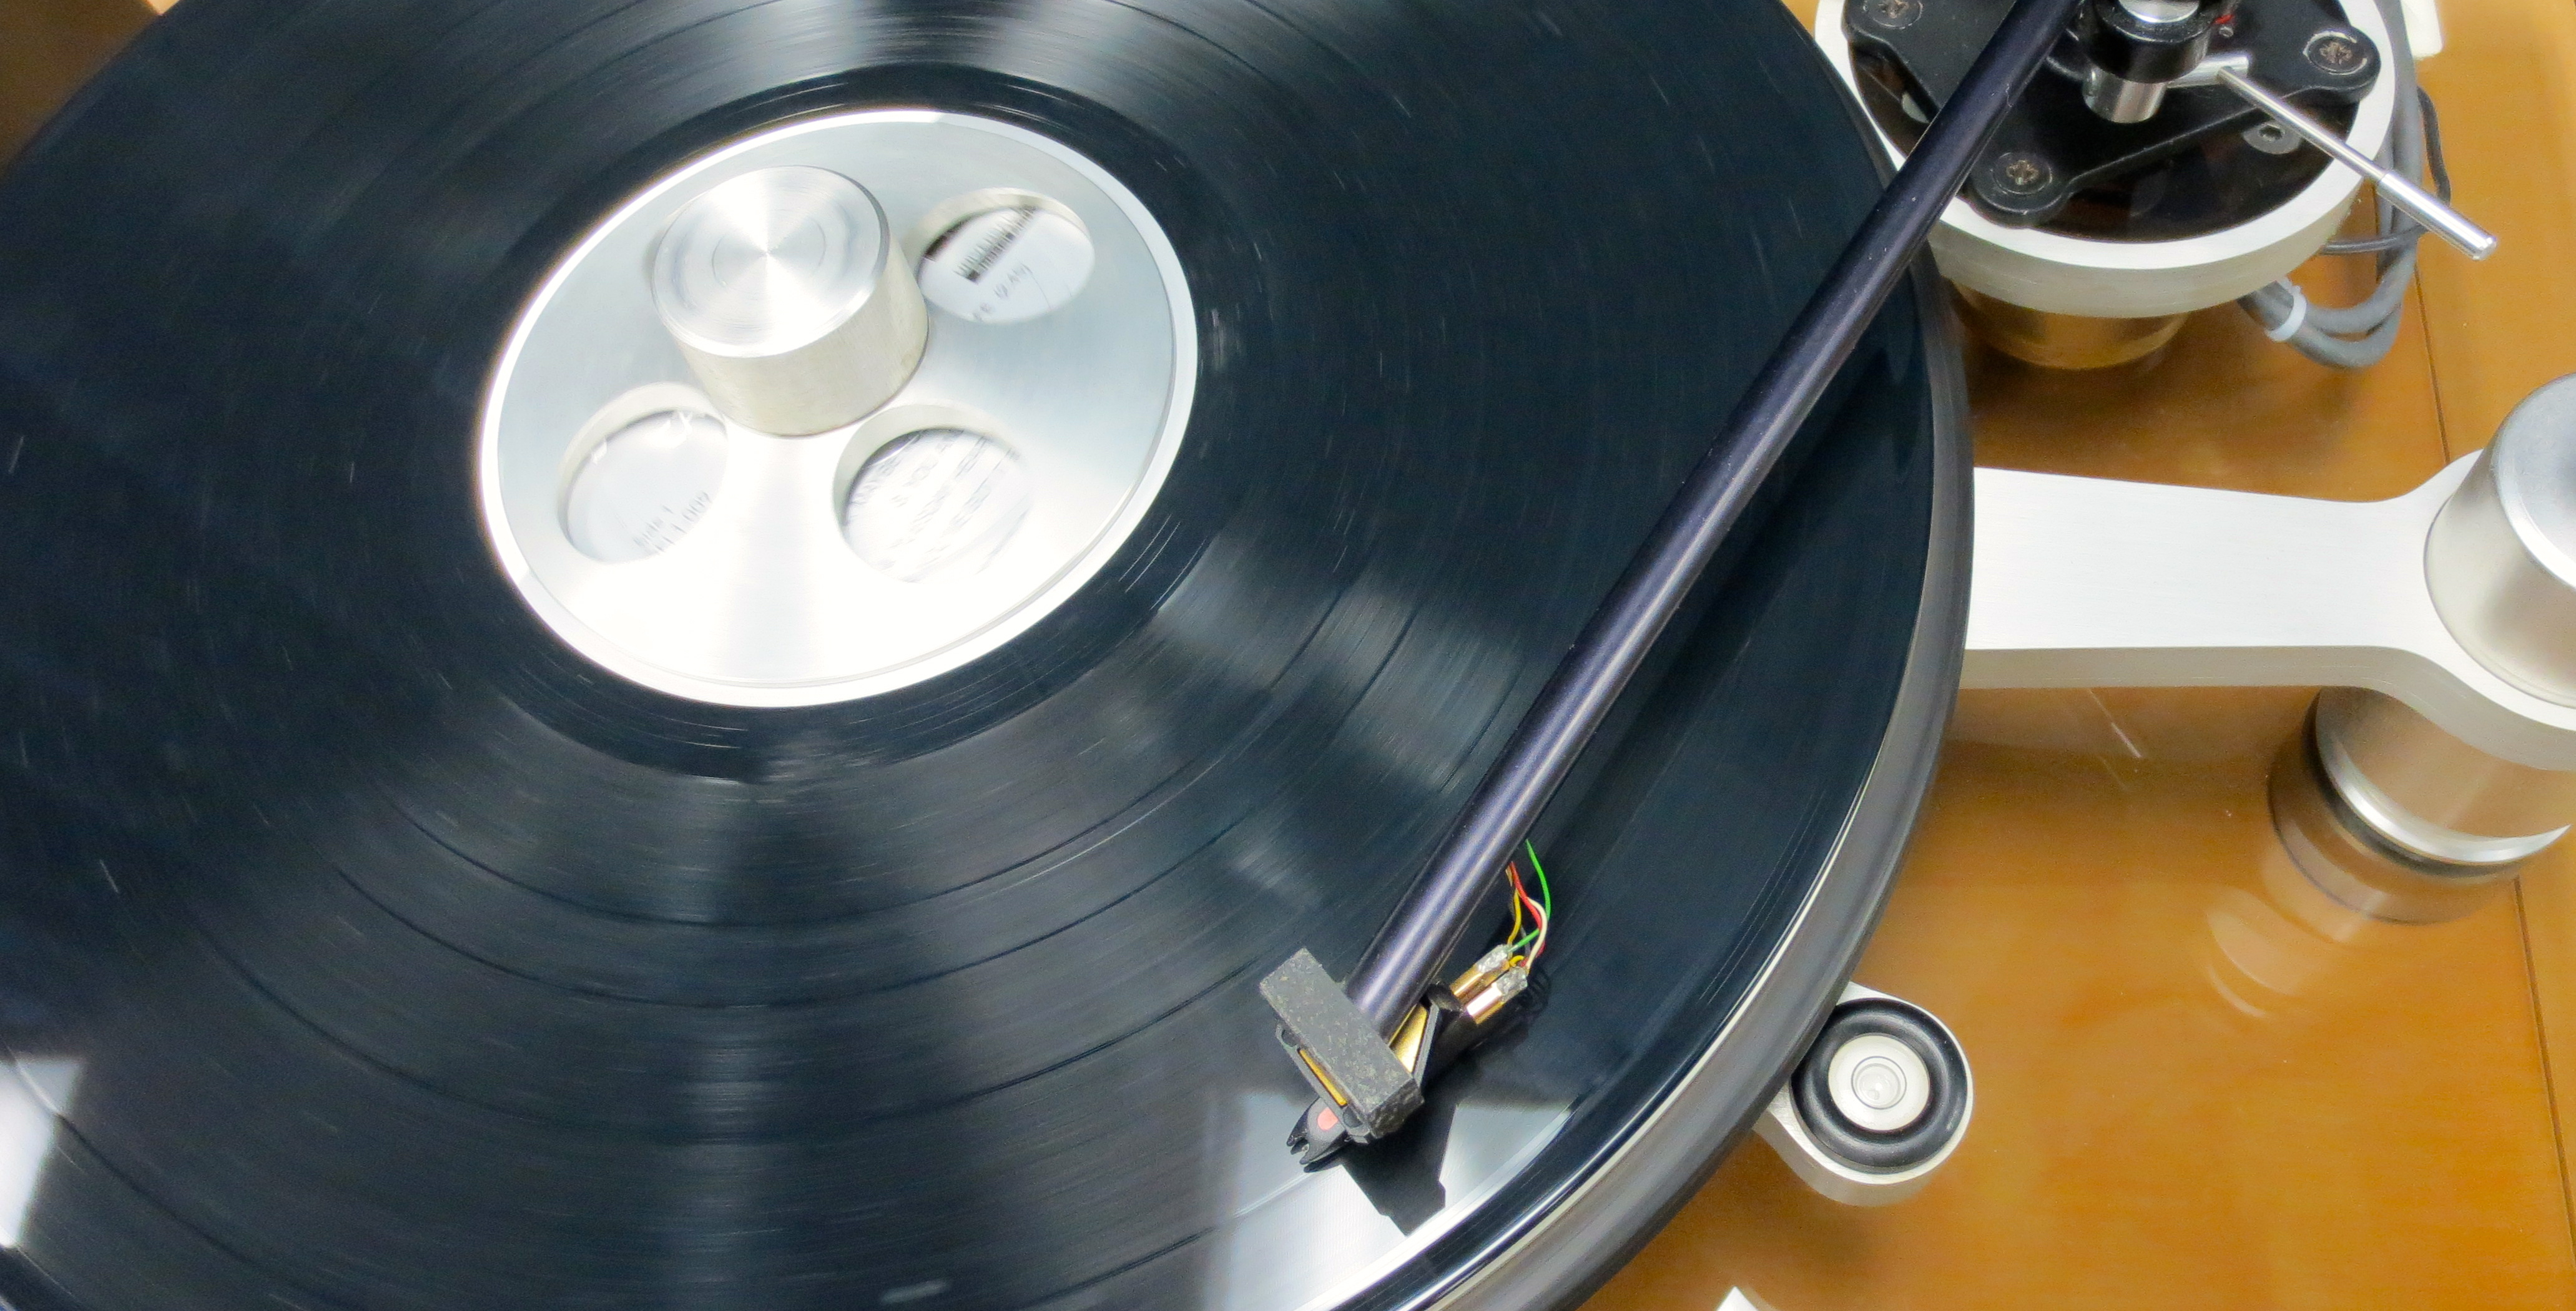 turntable hear the music